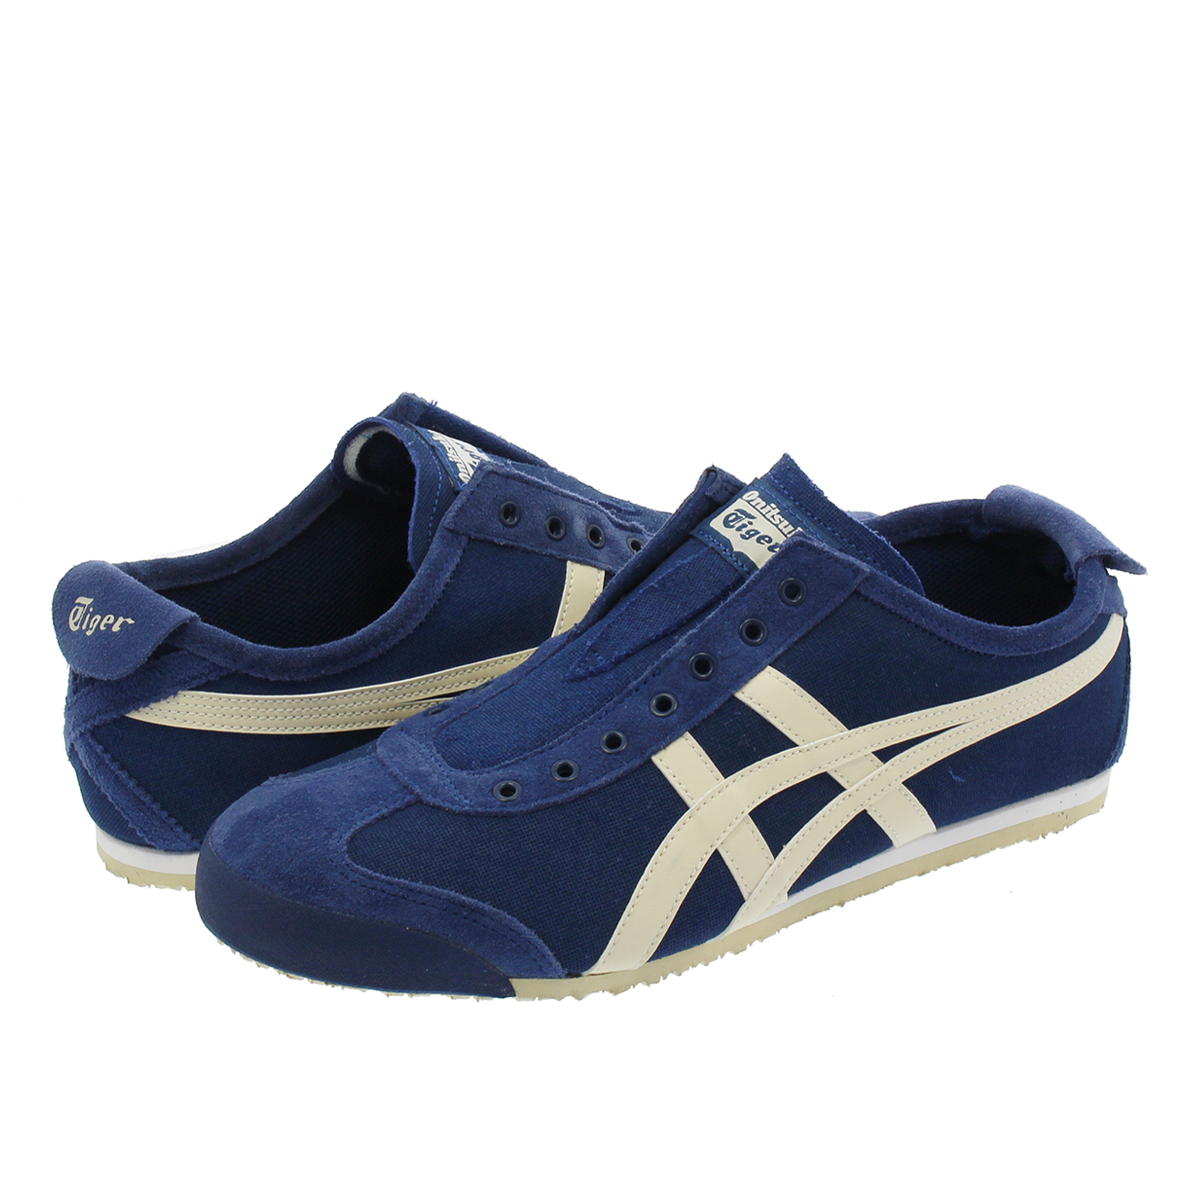 Onitsuka Tiger MEXICO 66 SLIP-ON オニツカタイガー メキシコ 66 スリッポン MIDNIGHT BLUE/OATMEAL 1183a042-400